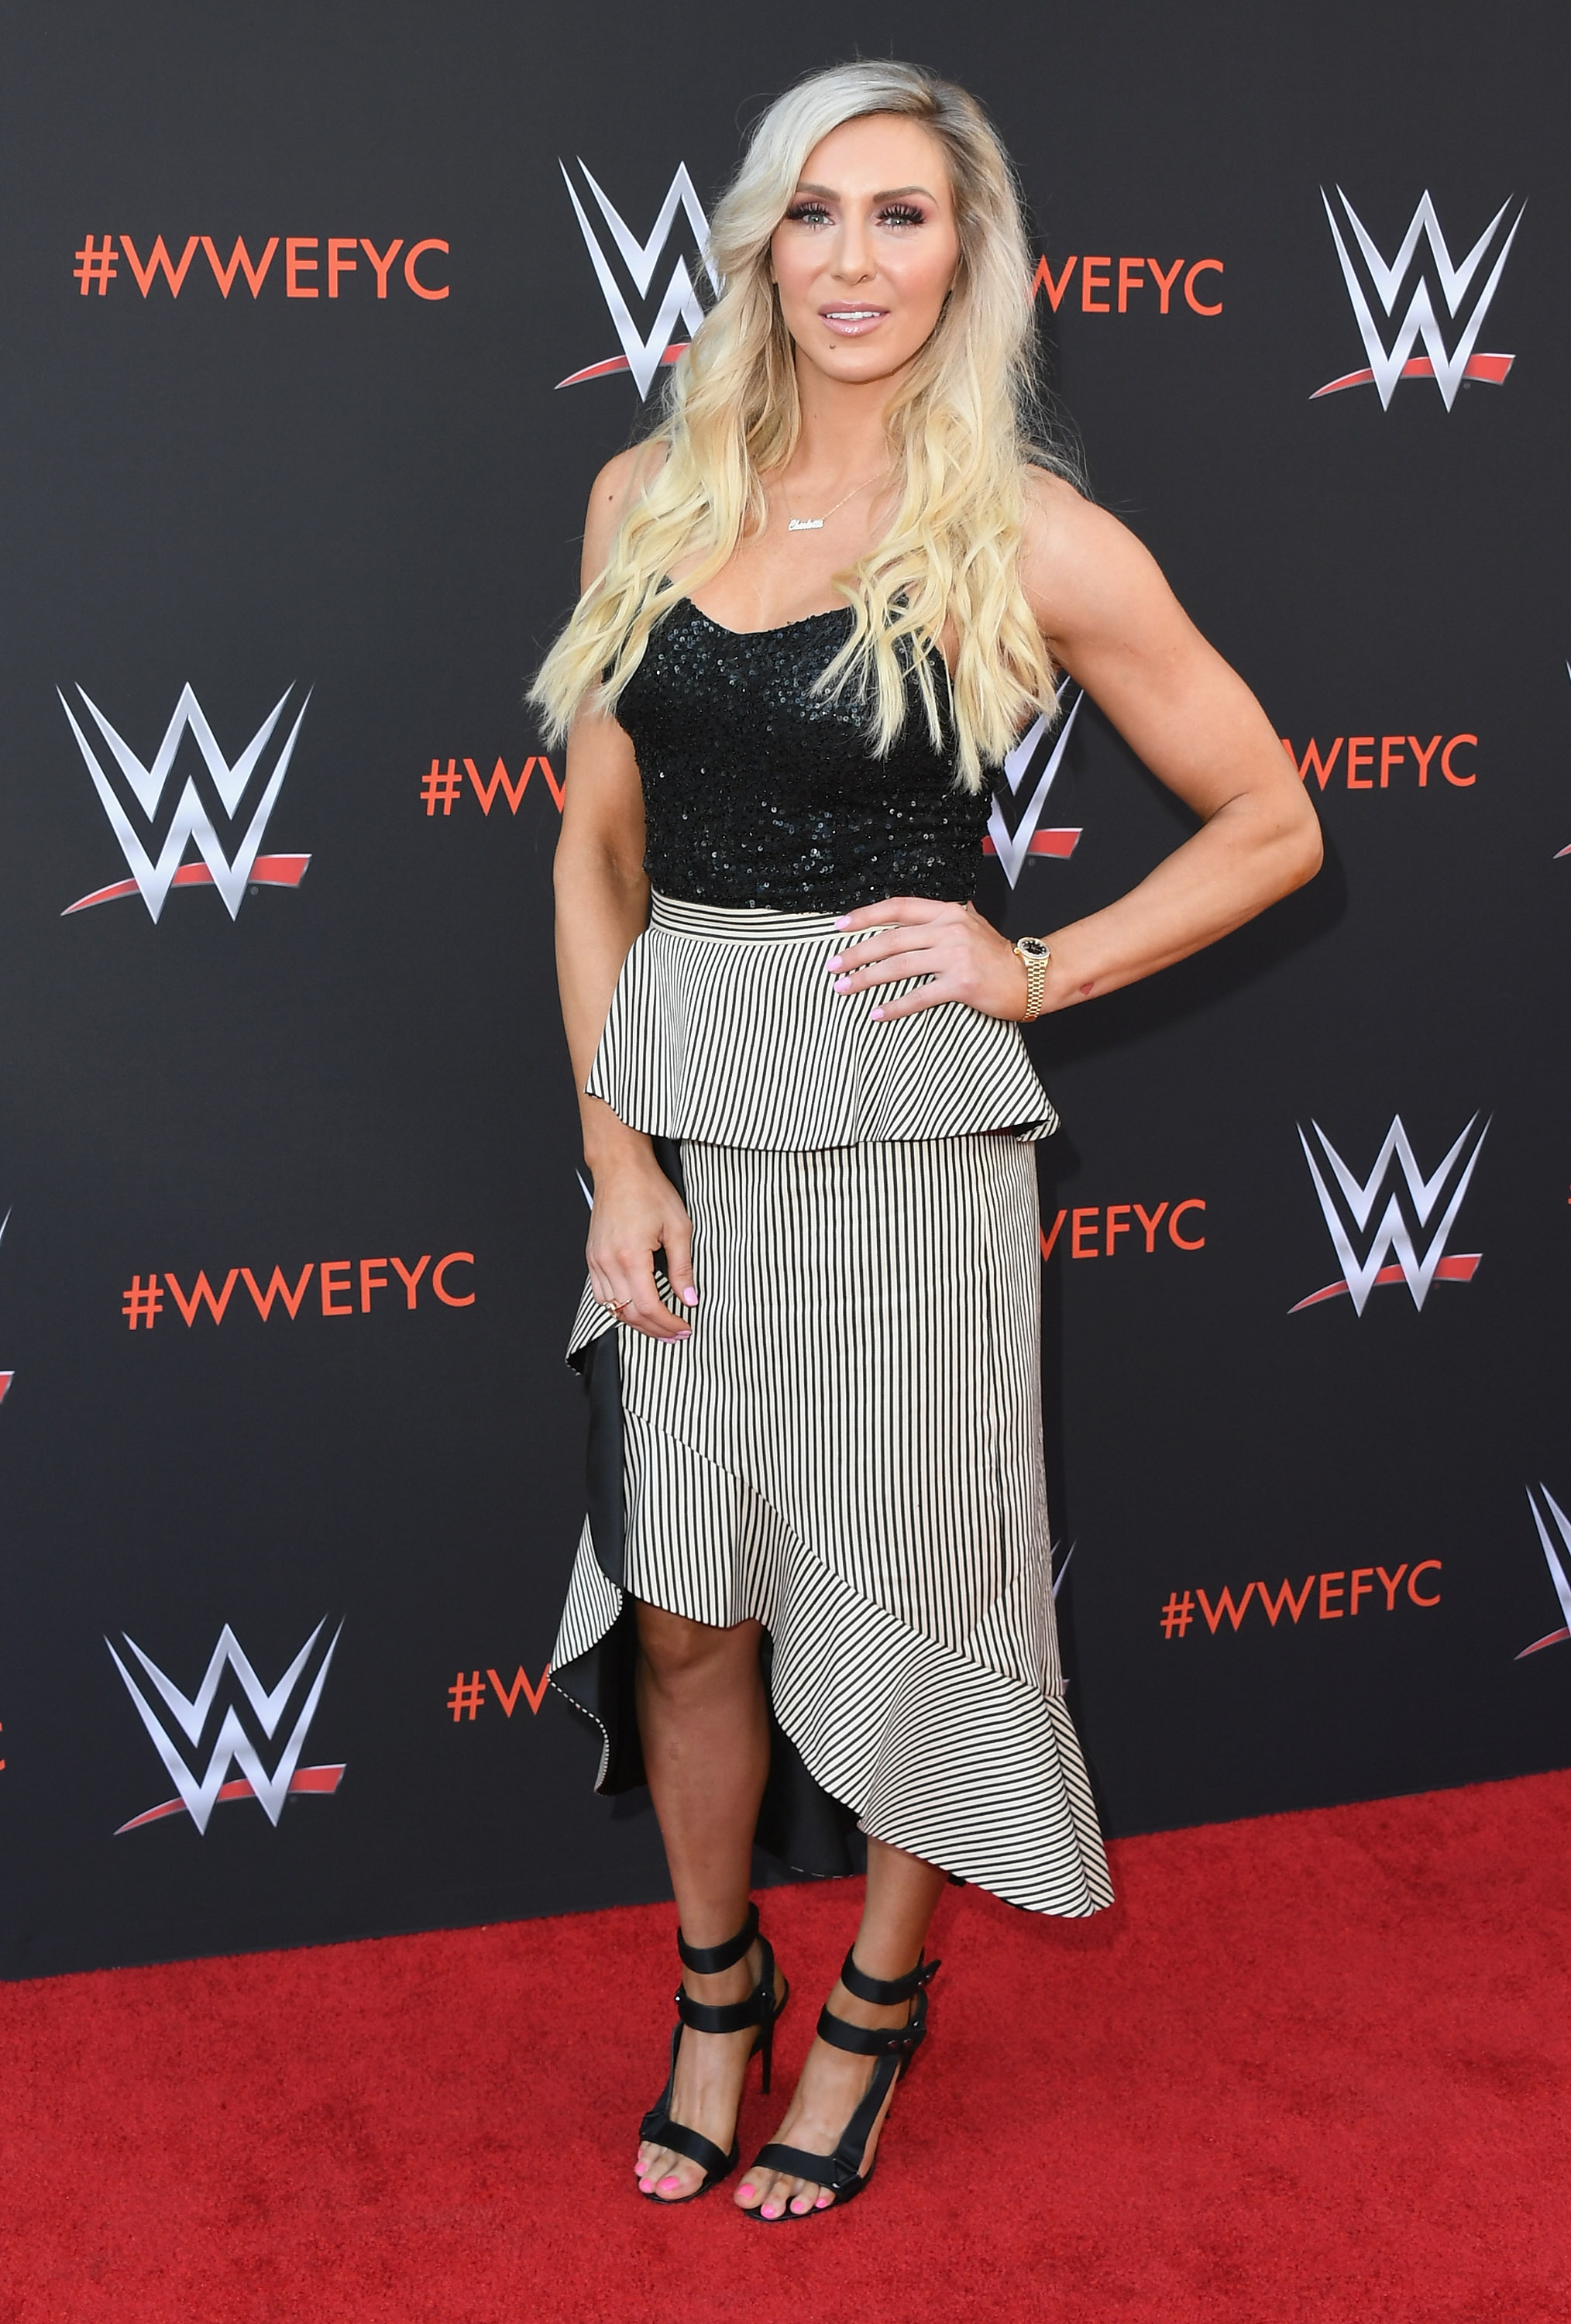 Charlotte Flair attends WWE's First-Ever Emmy 'For Your Consideration' Event at Saban Media Center on June 6, 2018 in North Hollywood, California. (Getty Images)